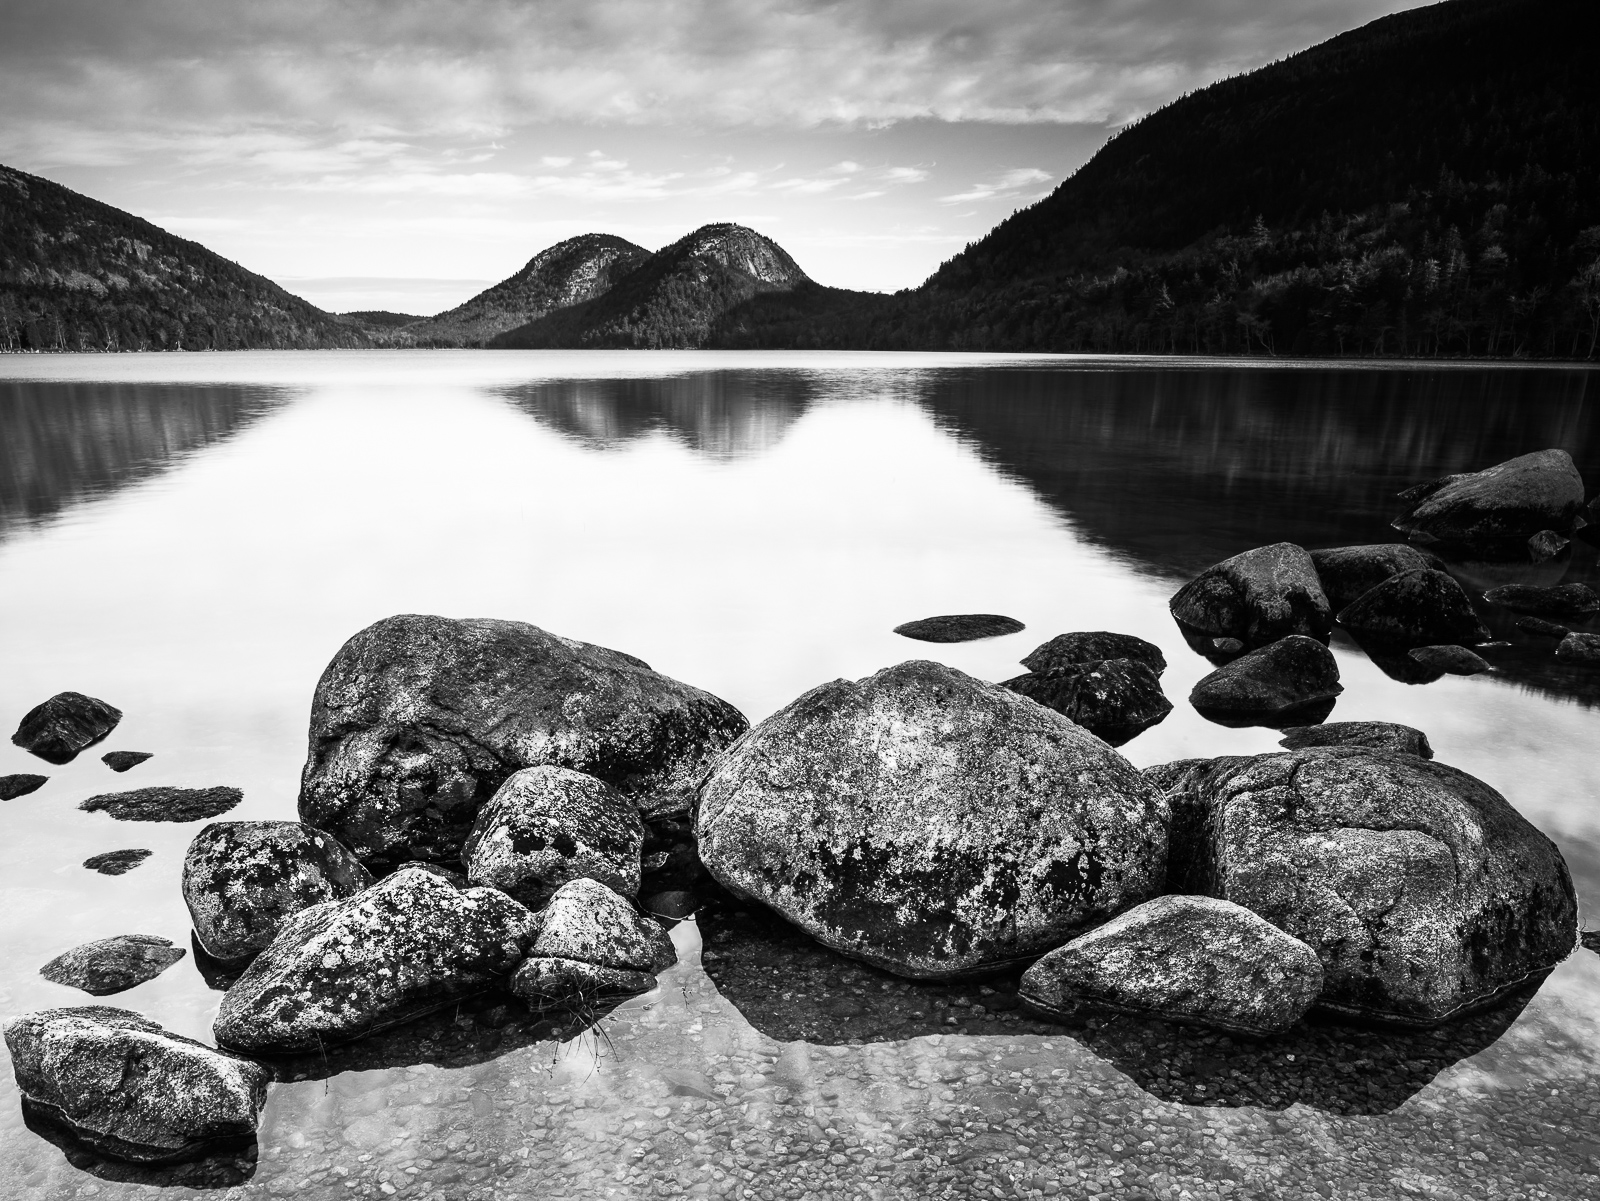 Granite at Bubble Pond, Acadia National Park, Black and White, Horizontal, Maine, Mountains, New England, landscape, BW, B&W, Black, White, photo